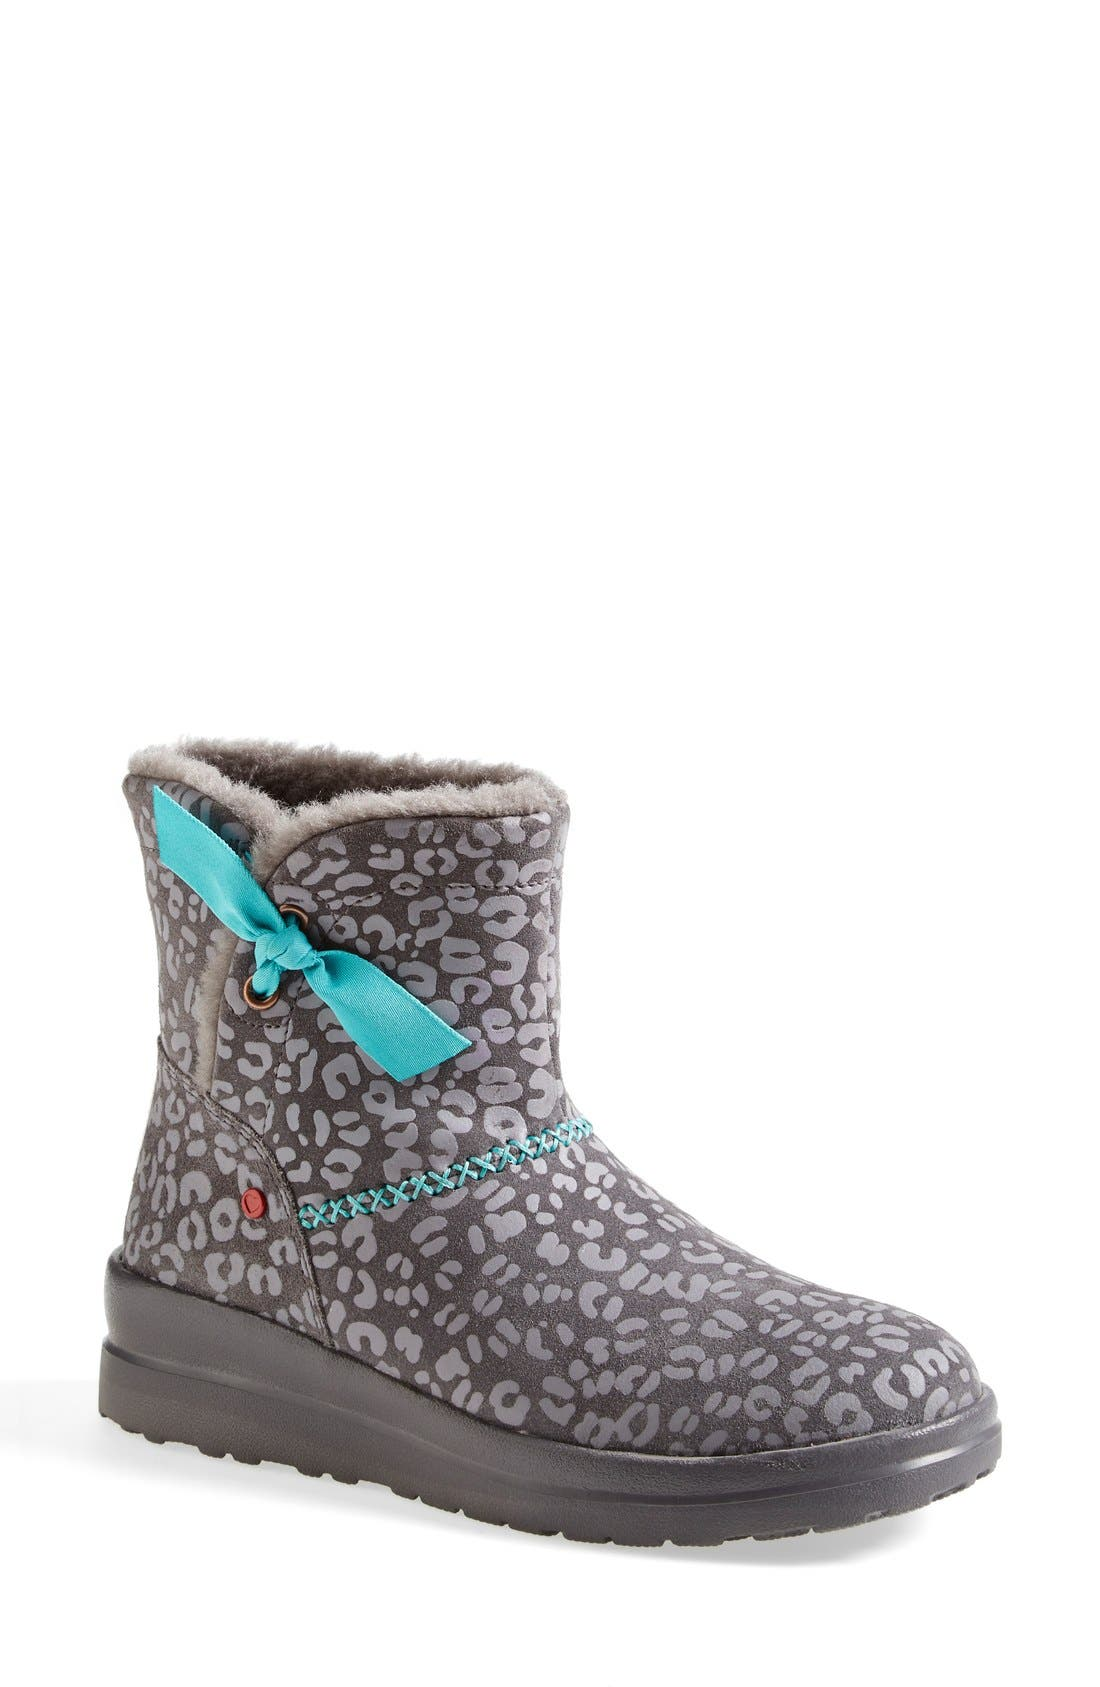 Alternate Image 1 Selected - I Heart UGG™ by UGG® Australia 'I Heart Knotty' Boot